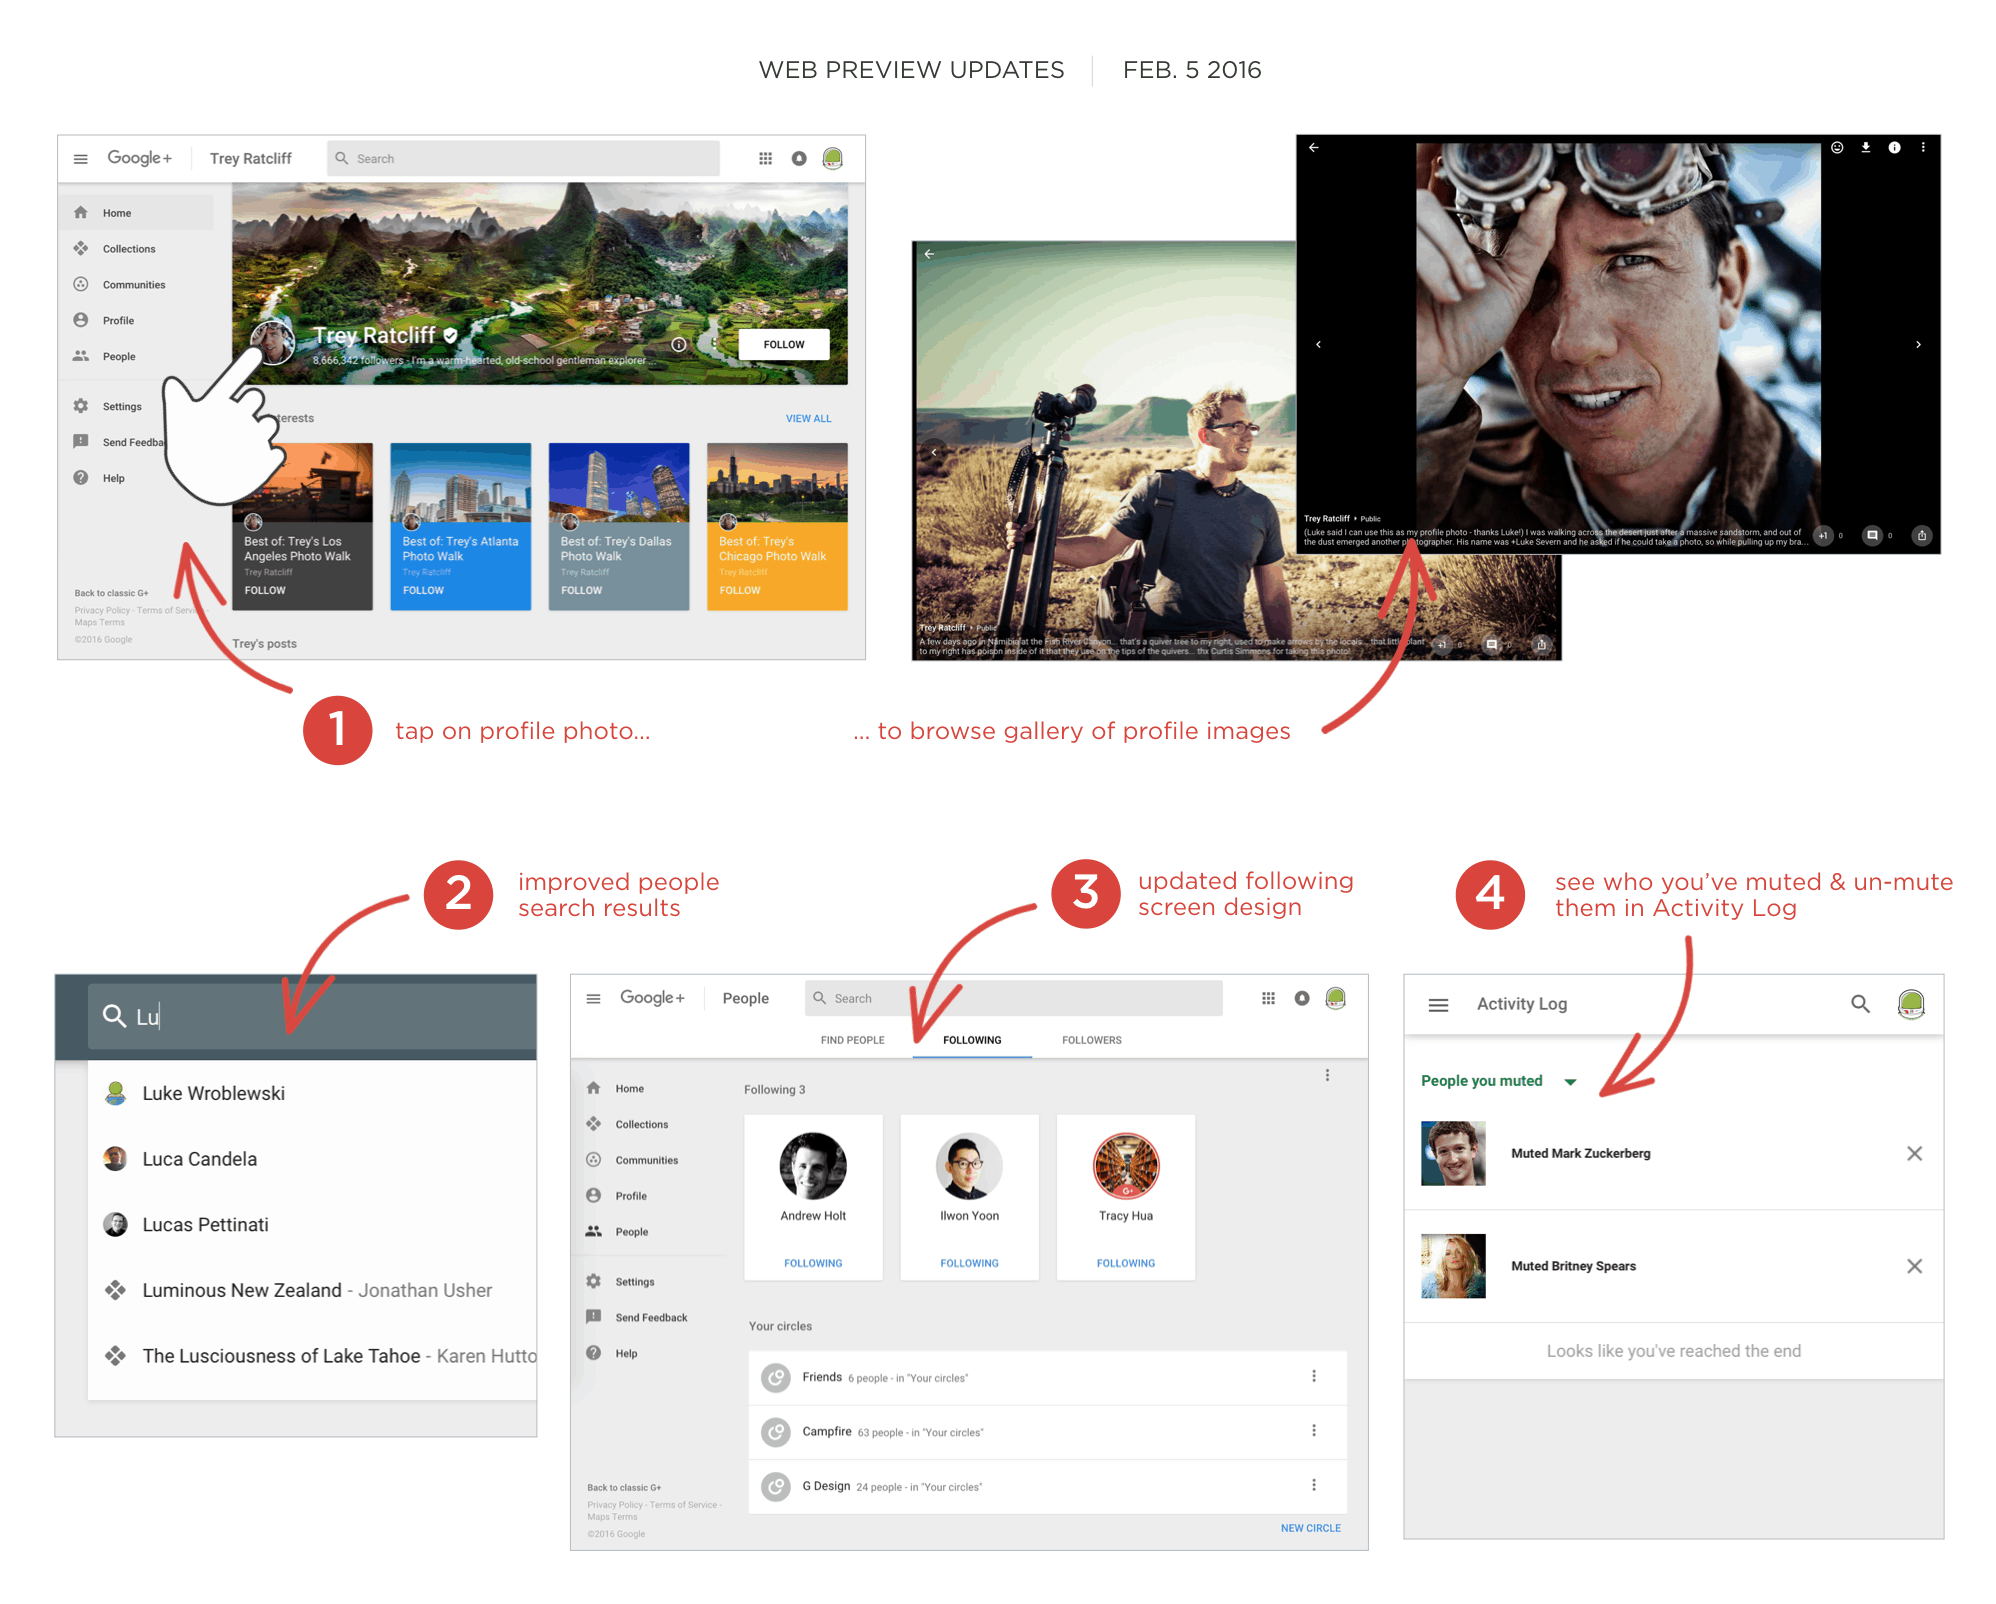 Google Plus web preview update